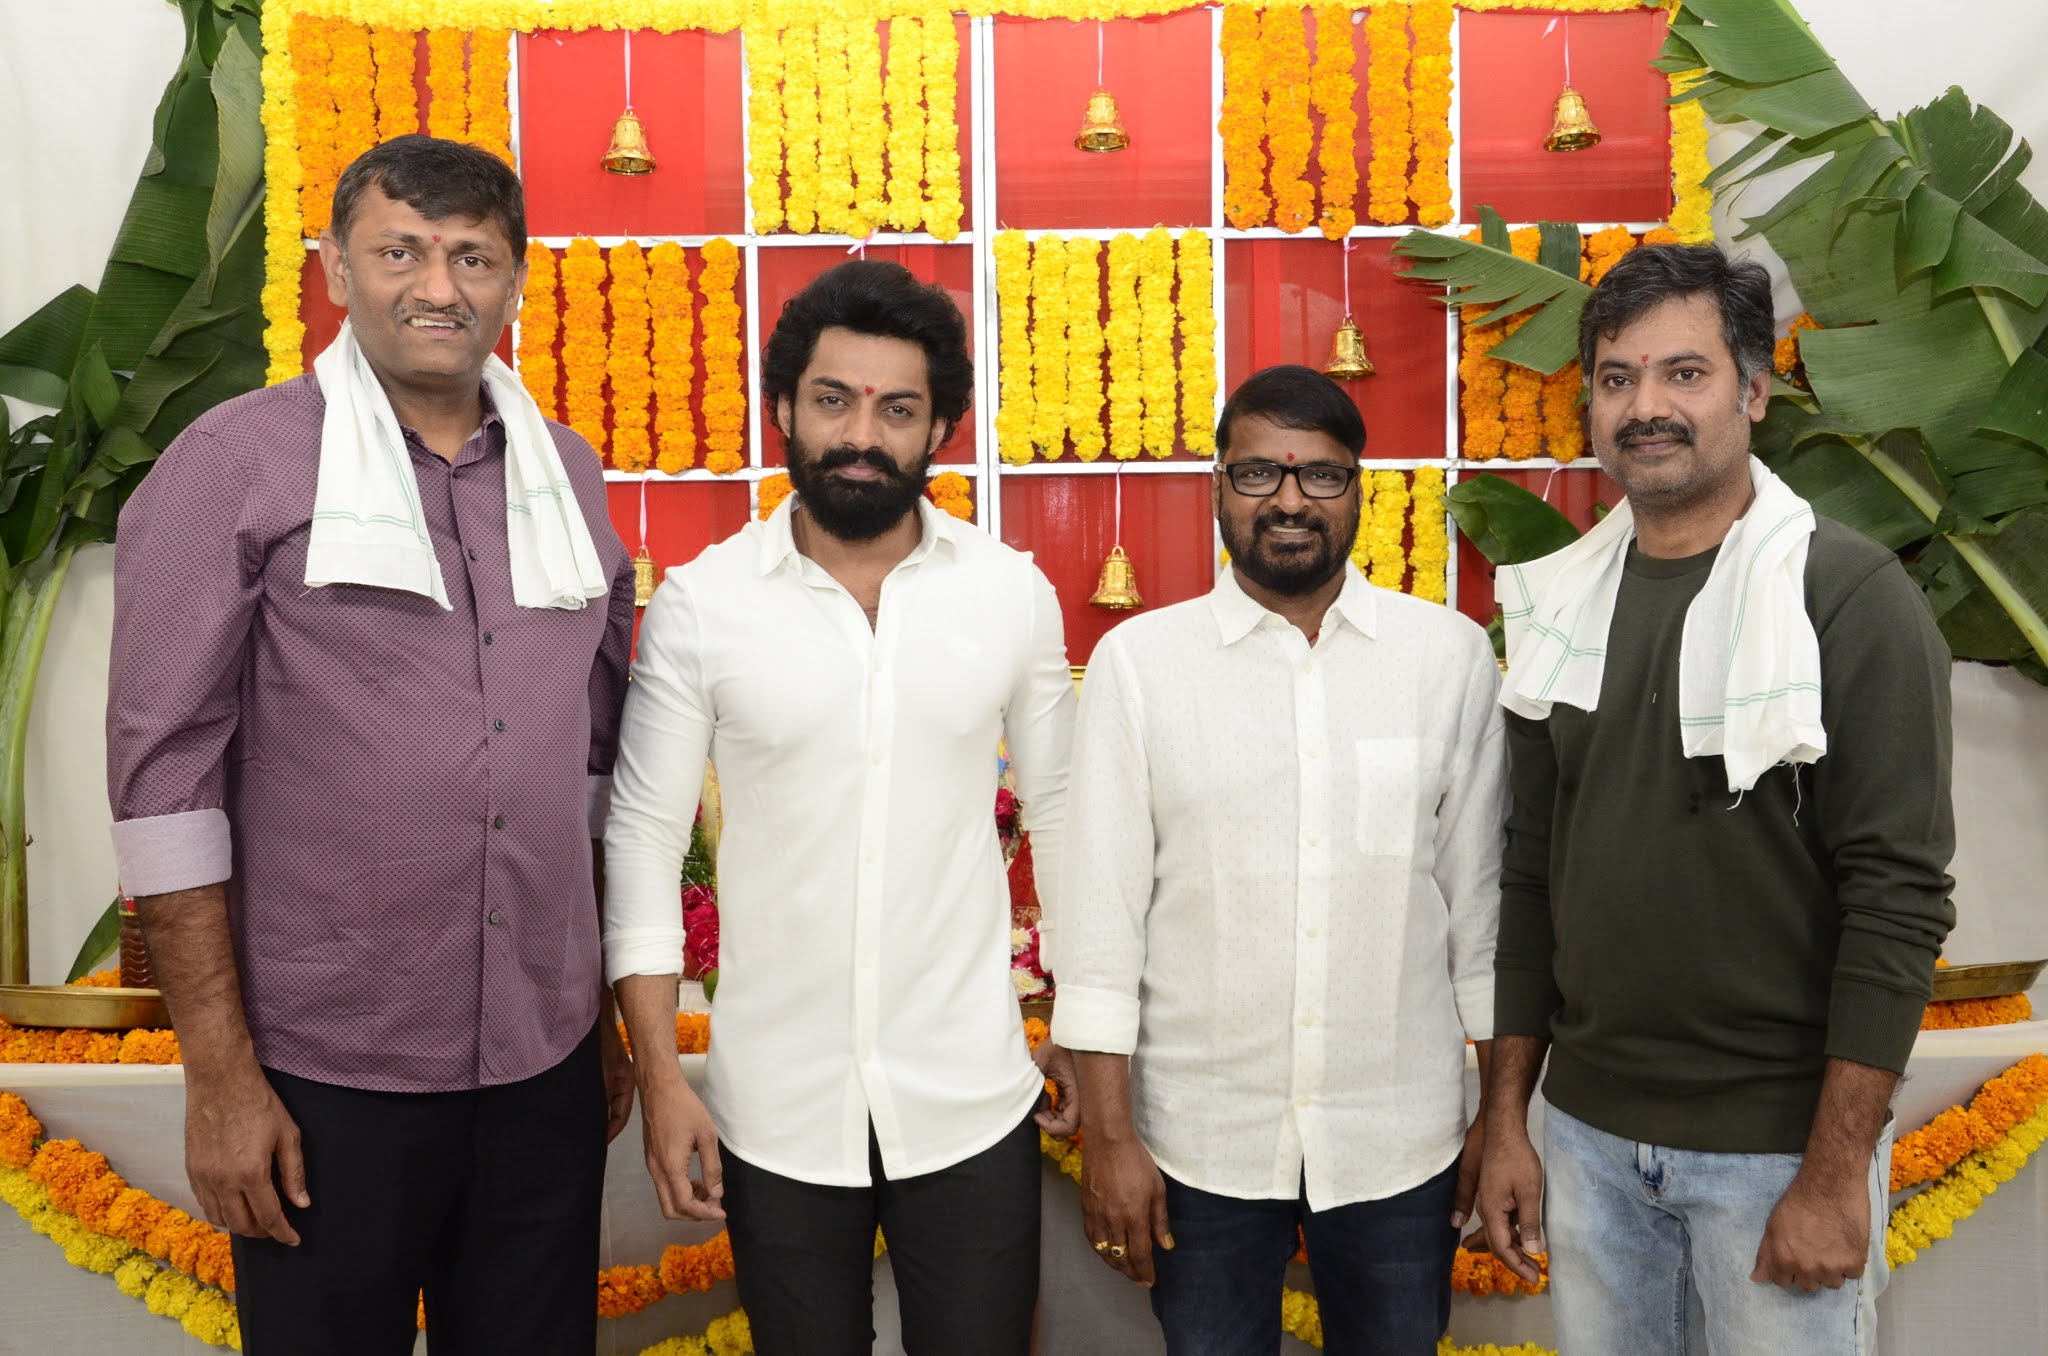 Nandamuri Kalyan Ram Mythri Movie Makers New Movie Launched with pooja